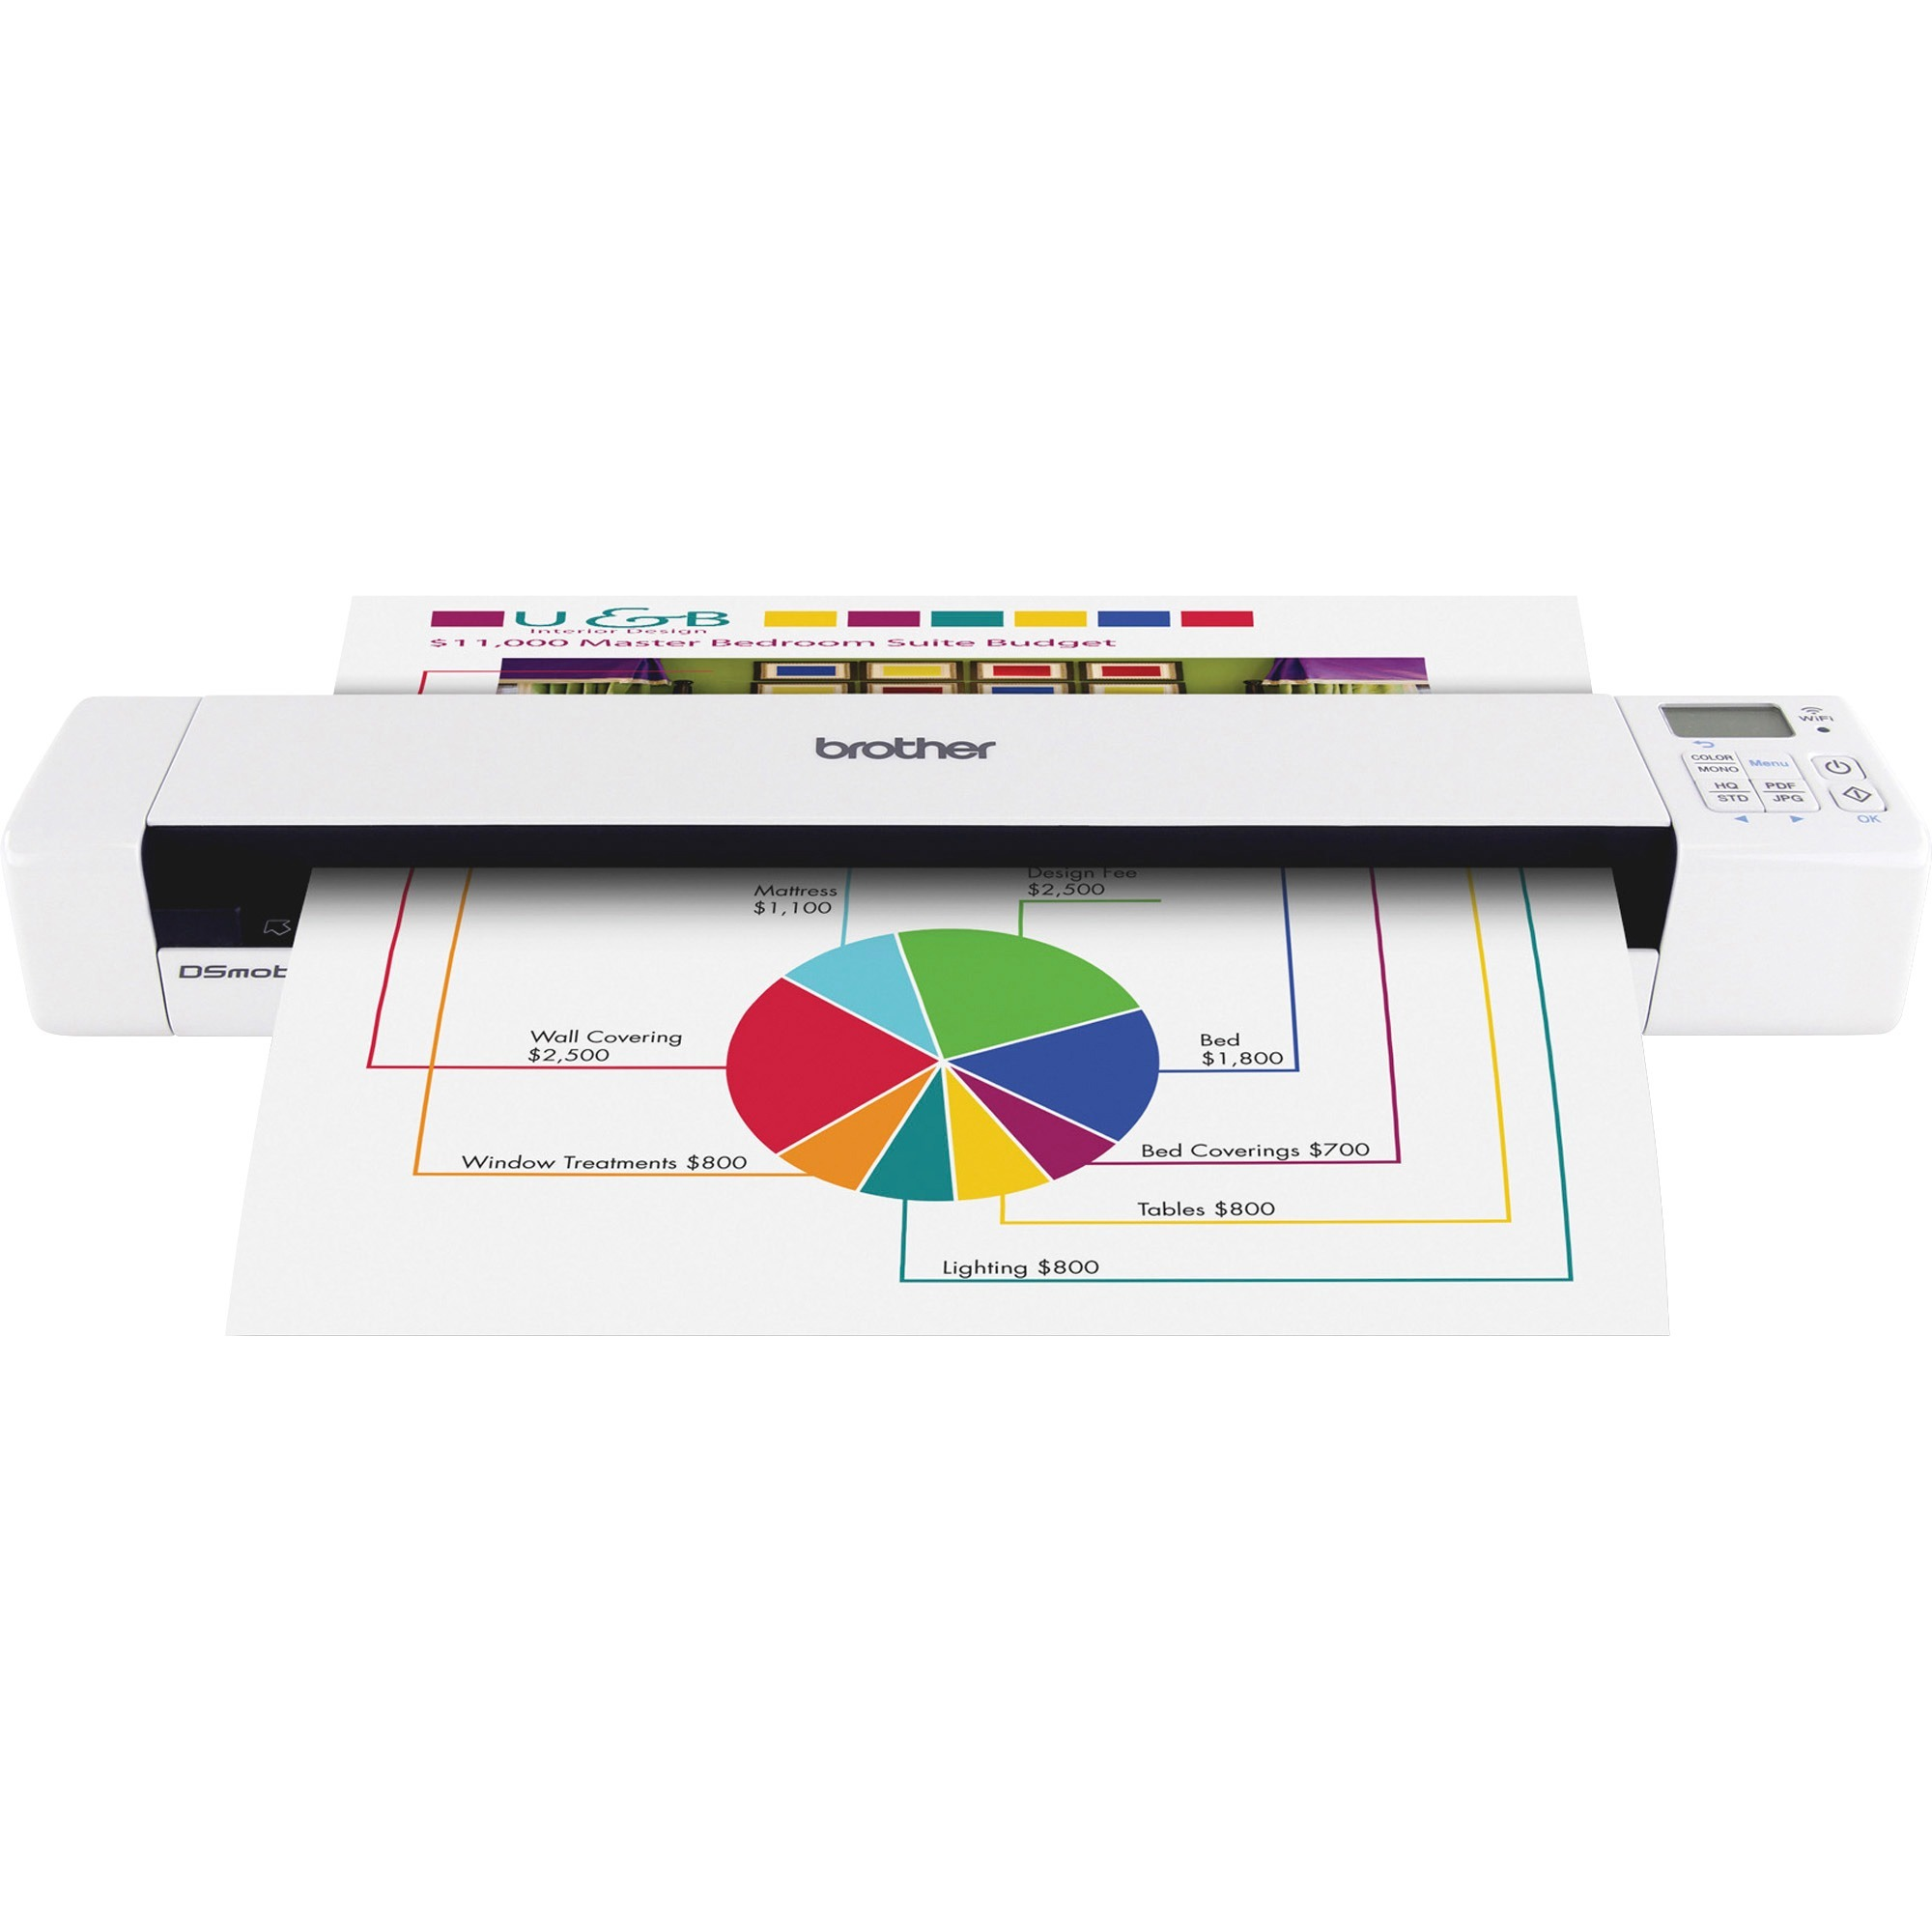 Brother, BRTDS820W, DS820W Wireless Mobile Color Scanner, 1 Each